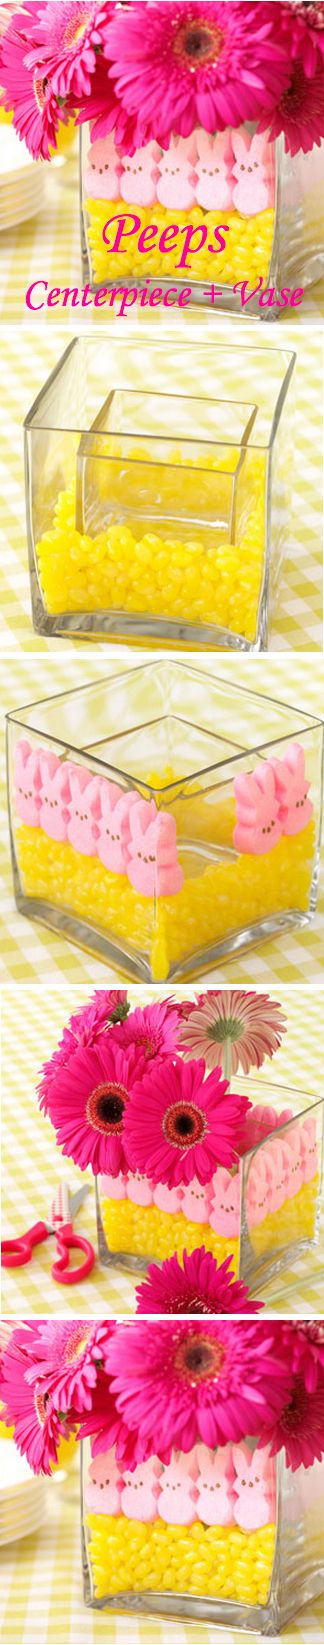 Peeps Centerpiece and Vase for Easter Brunch #decor #holidays